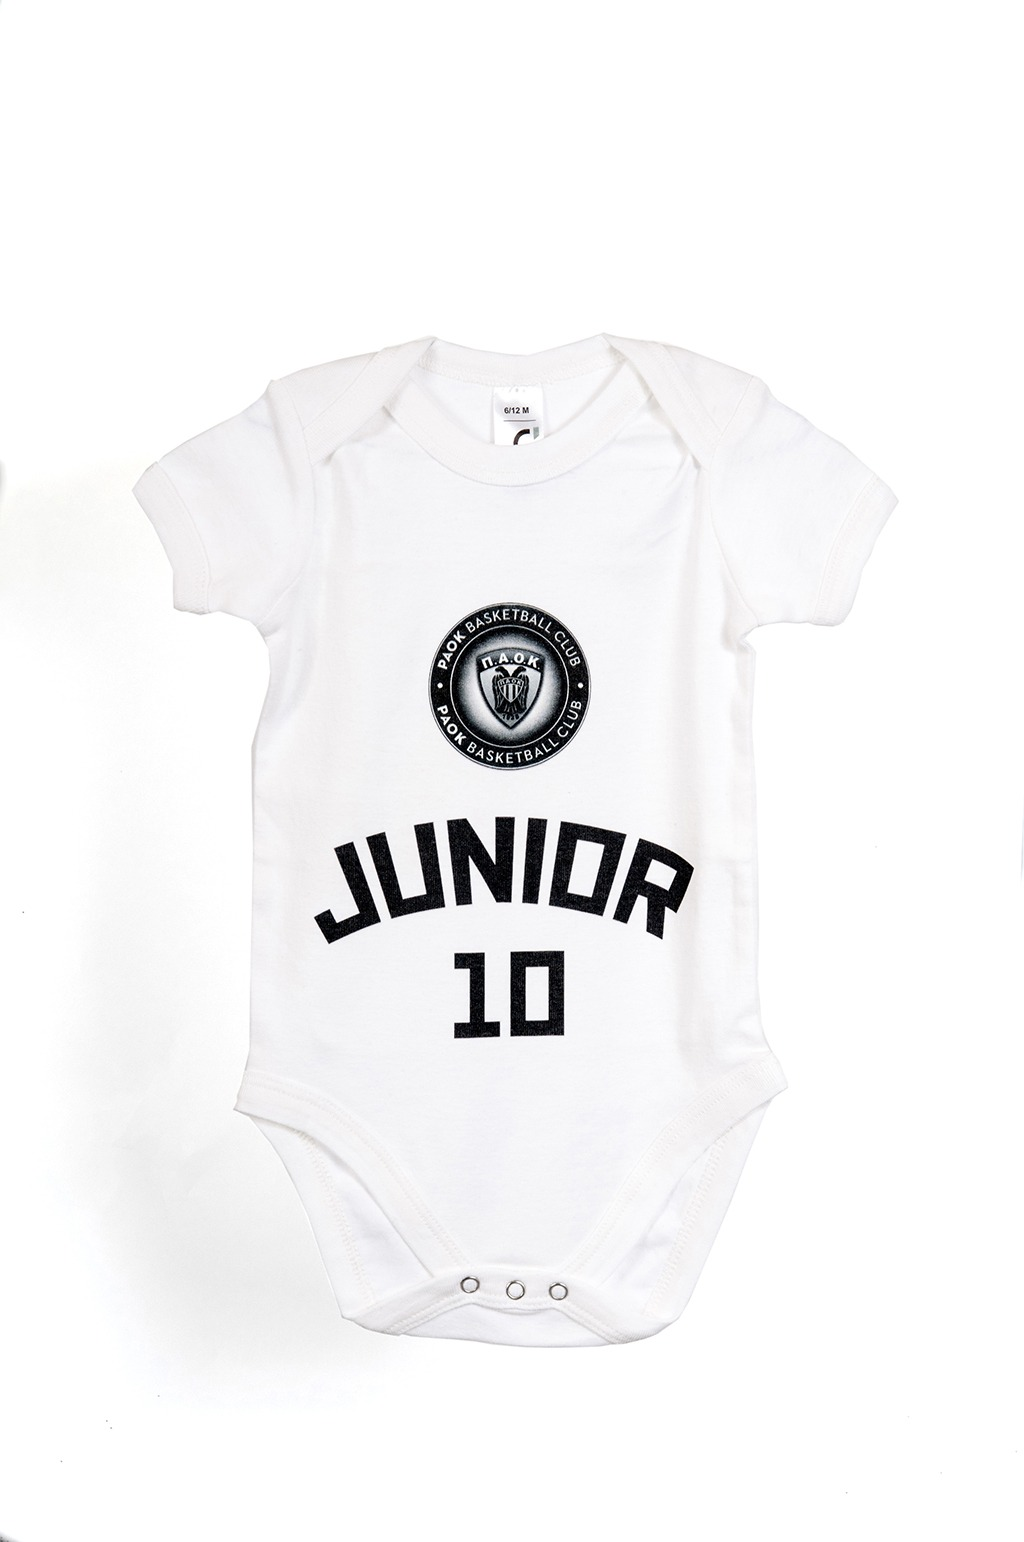 7235d121362e ΠΑΟΚ BABY ΦΟΡΜΑΚΙ 100% ΒΑΜΒΑΚΙ JUNIOR 10 – PAOK BC – Official Store